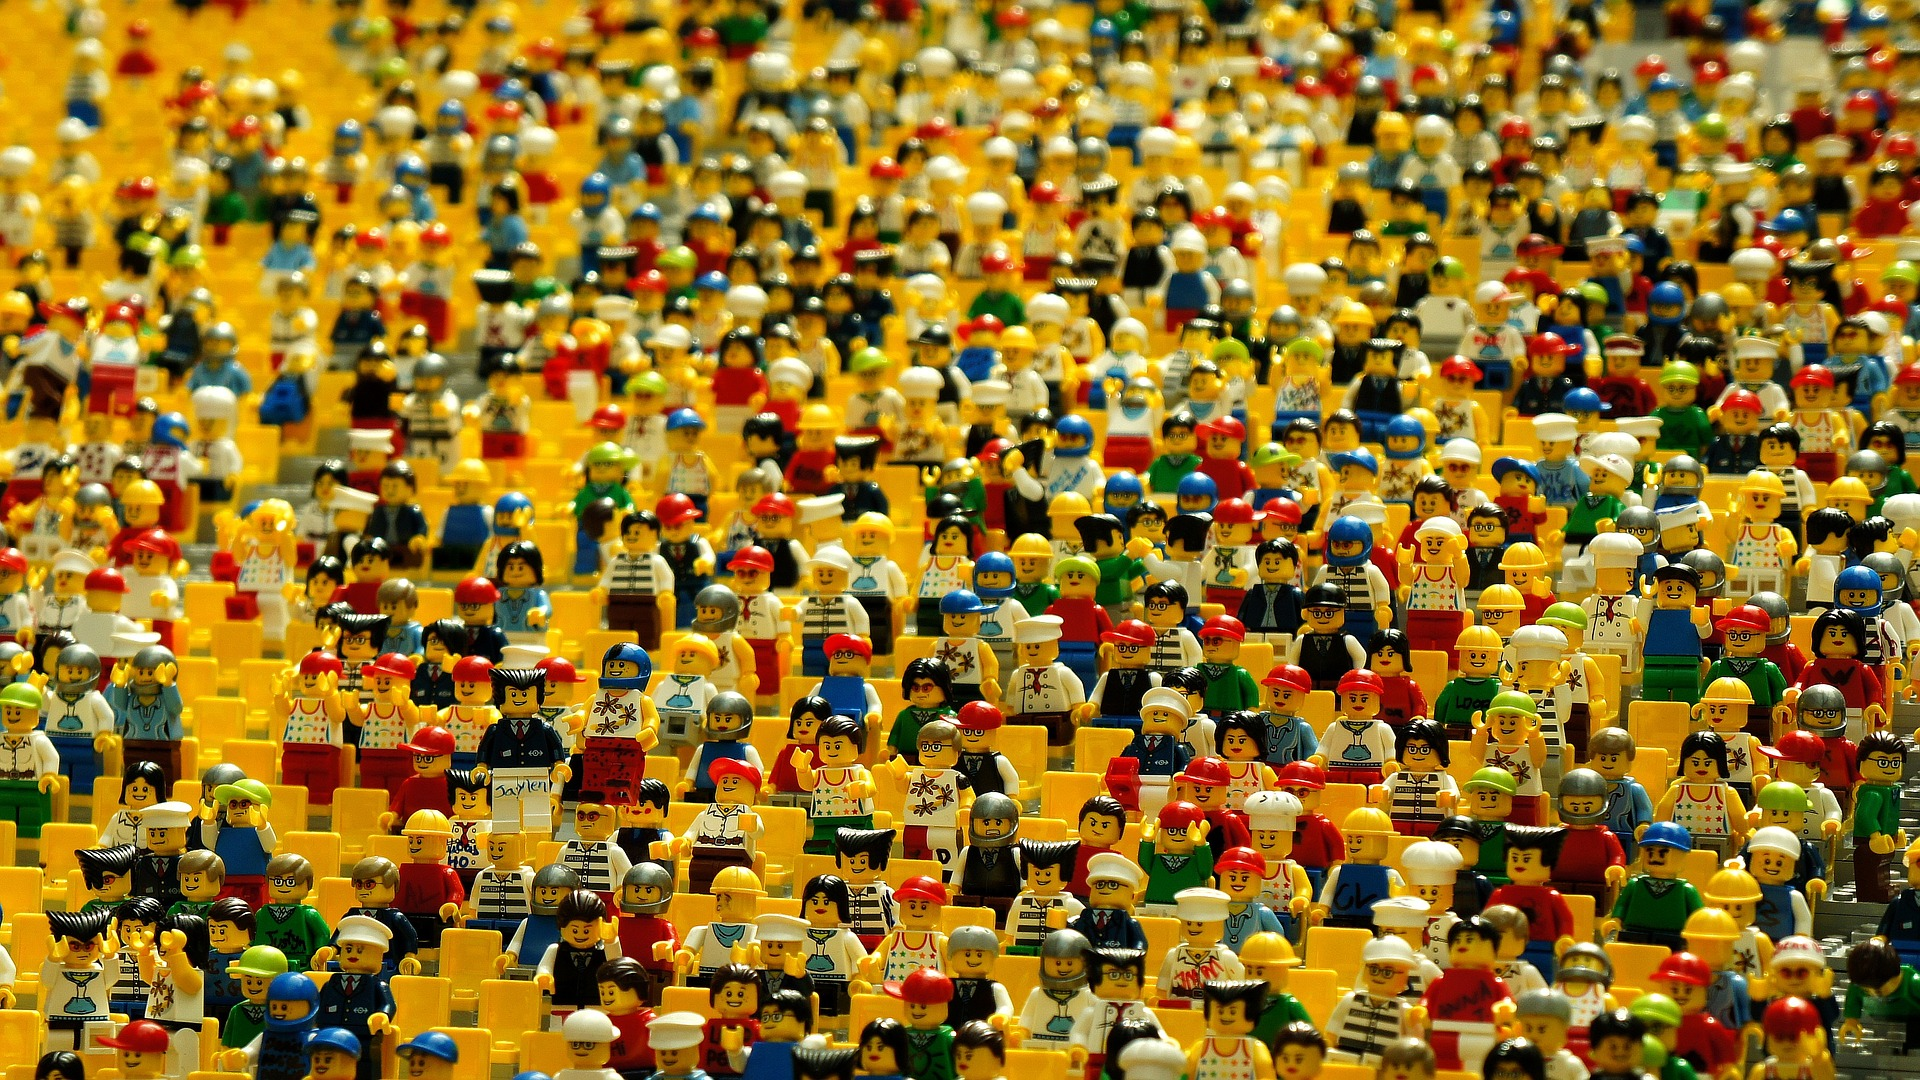 Lost of Lego People